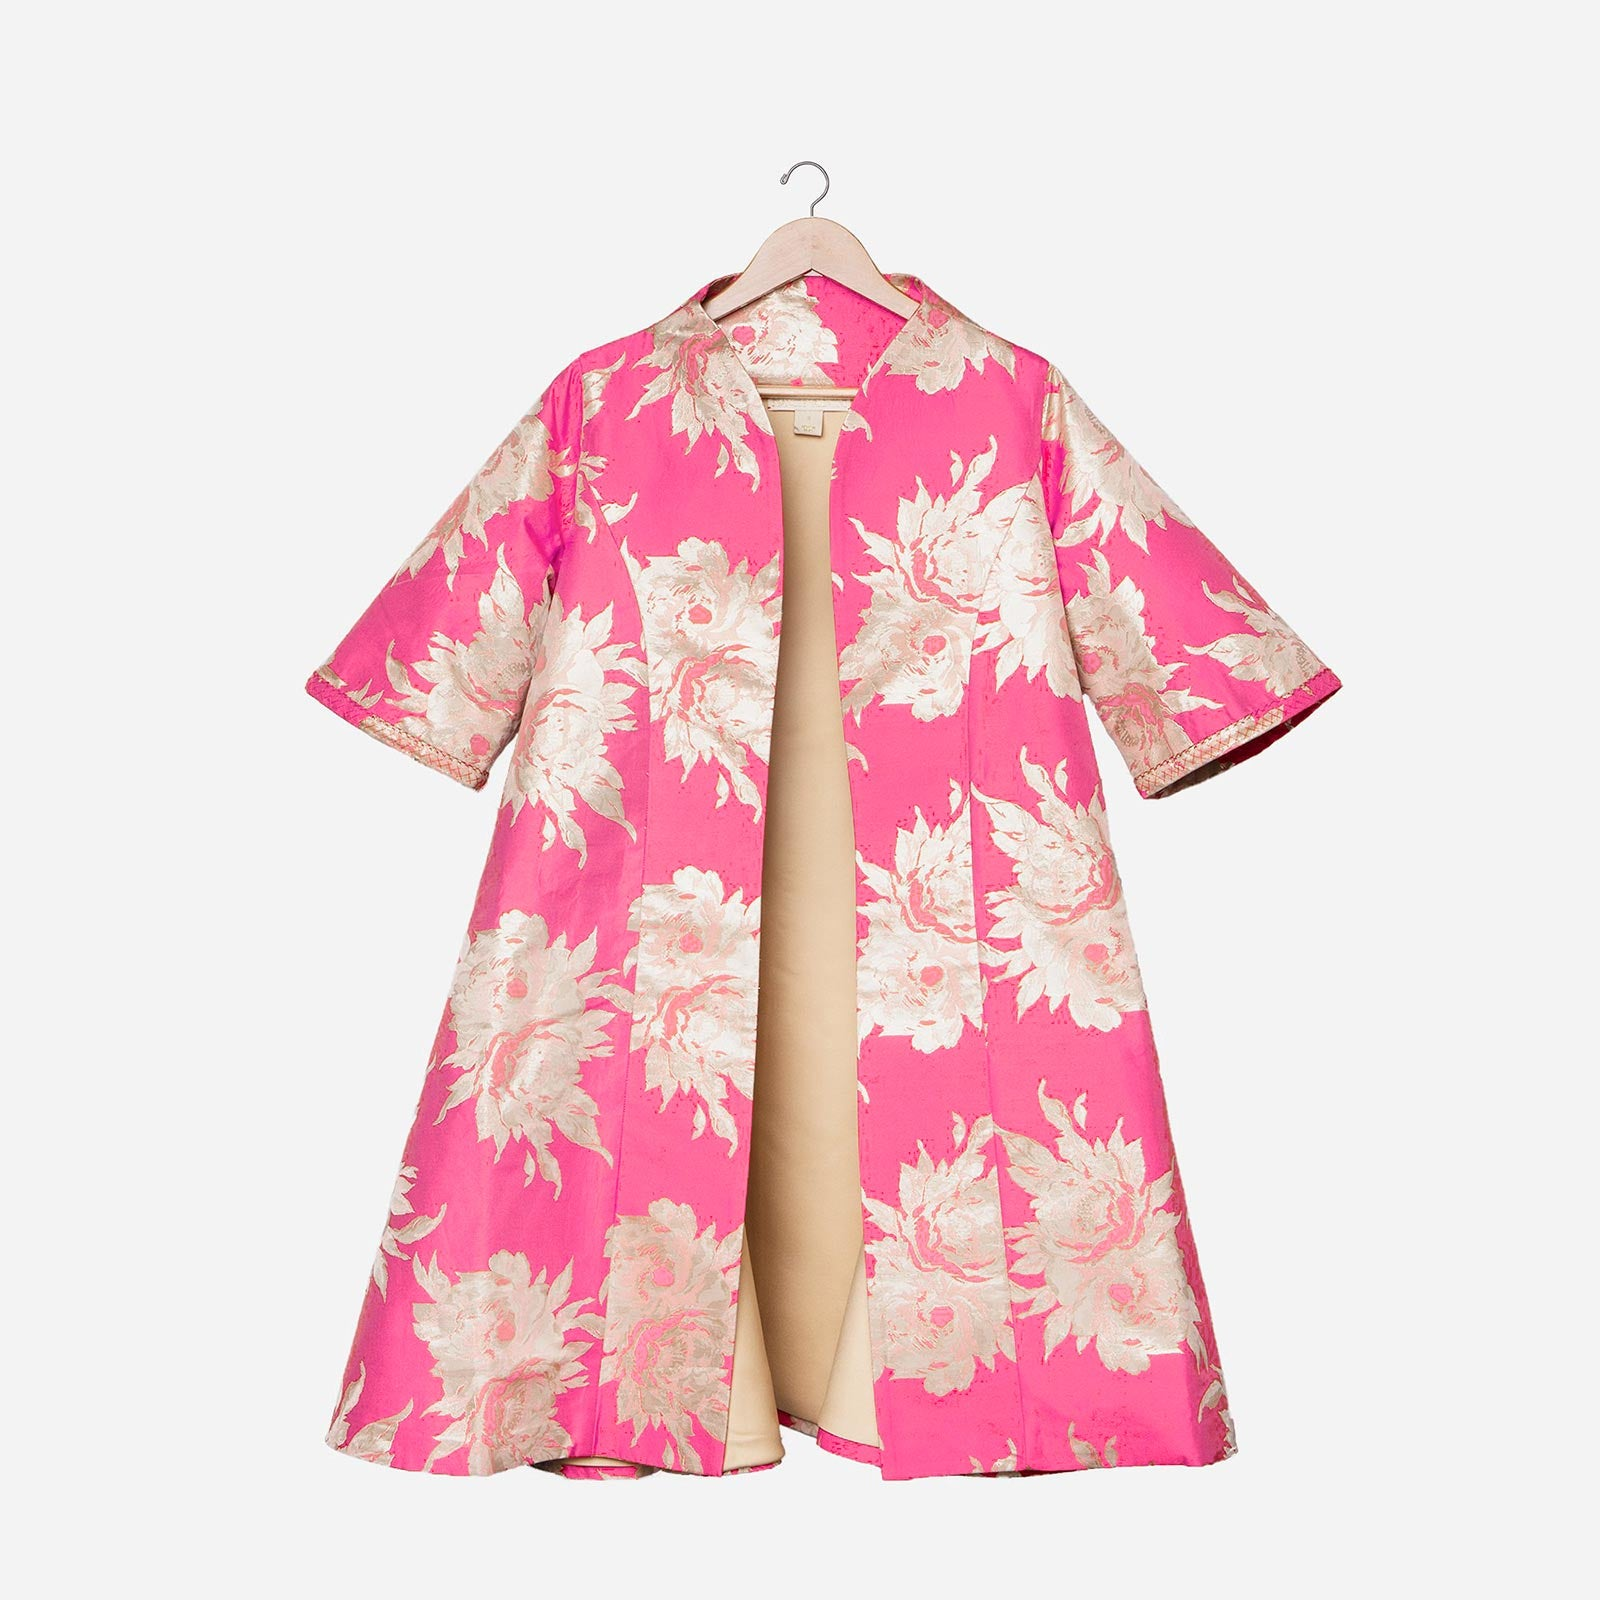 Metallic Jacquard Swing Coat Pink - Frances Valentine